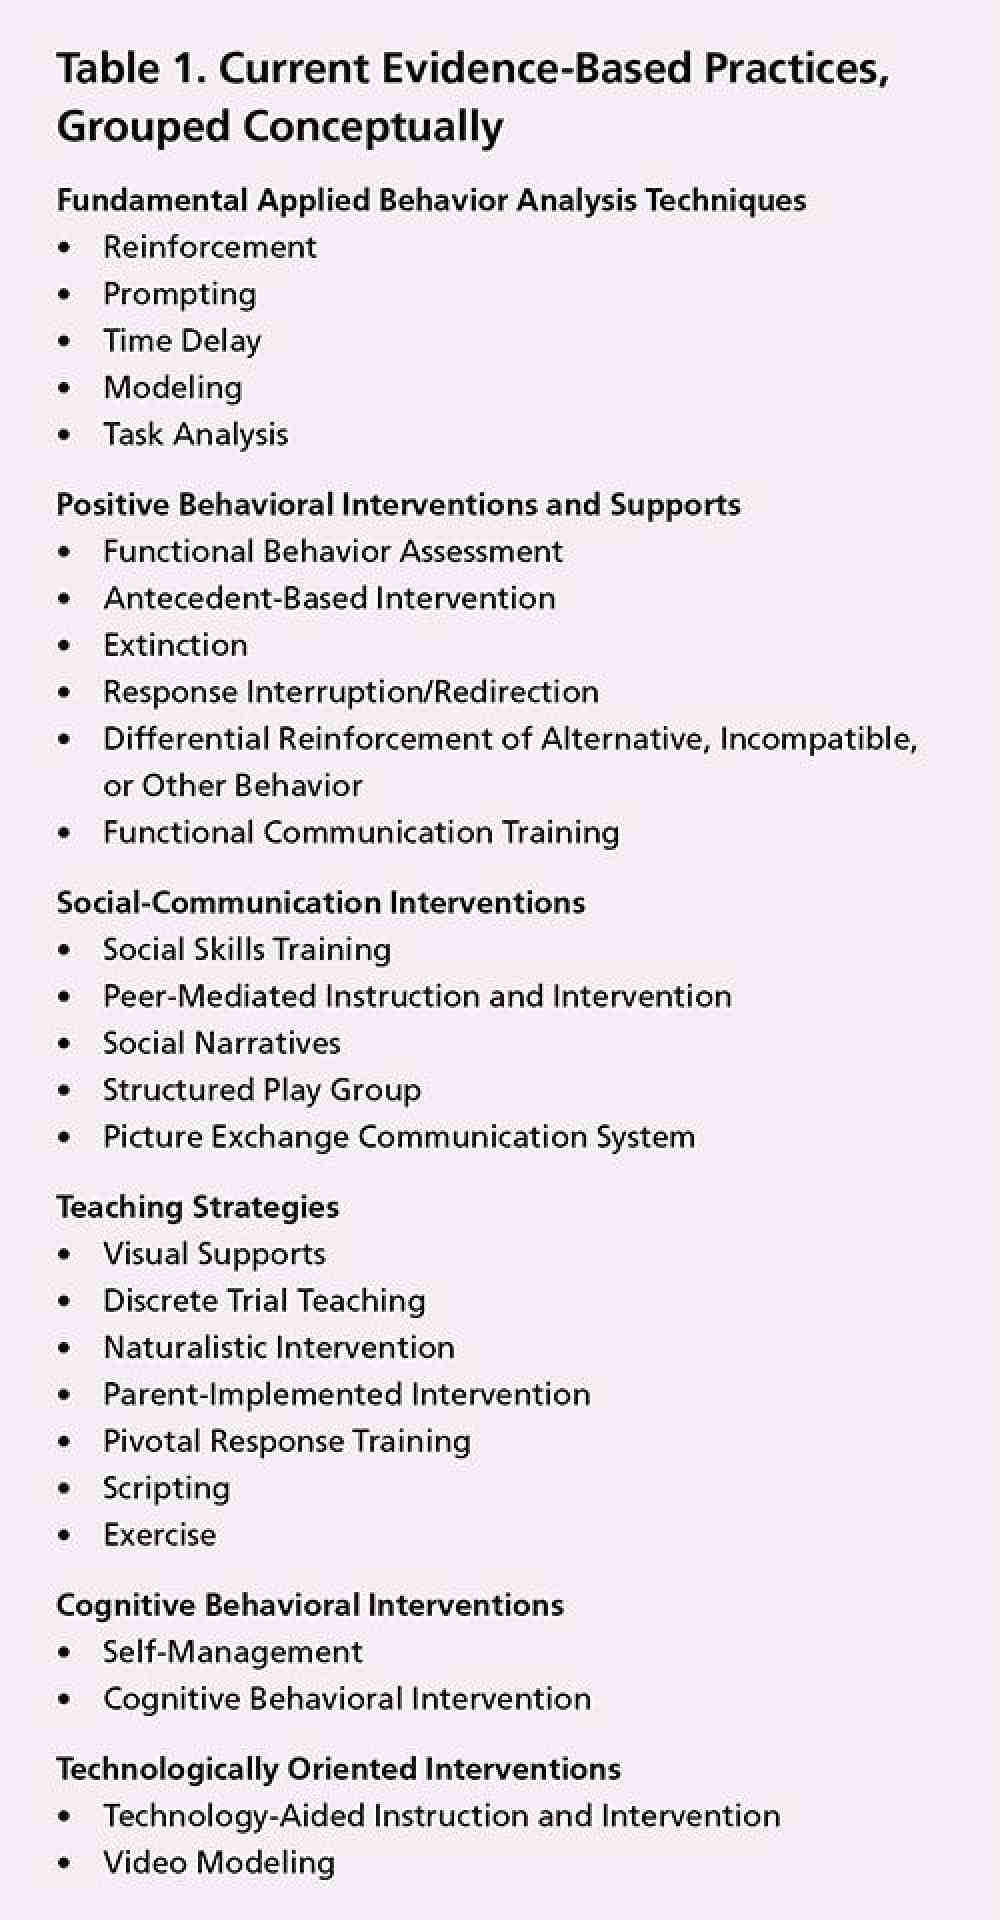 Table 1: Current Evidence-Based Practices, Grouped Conceptually